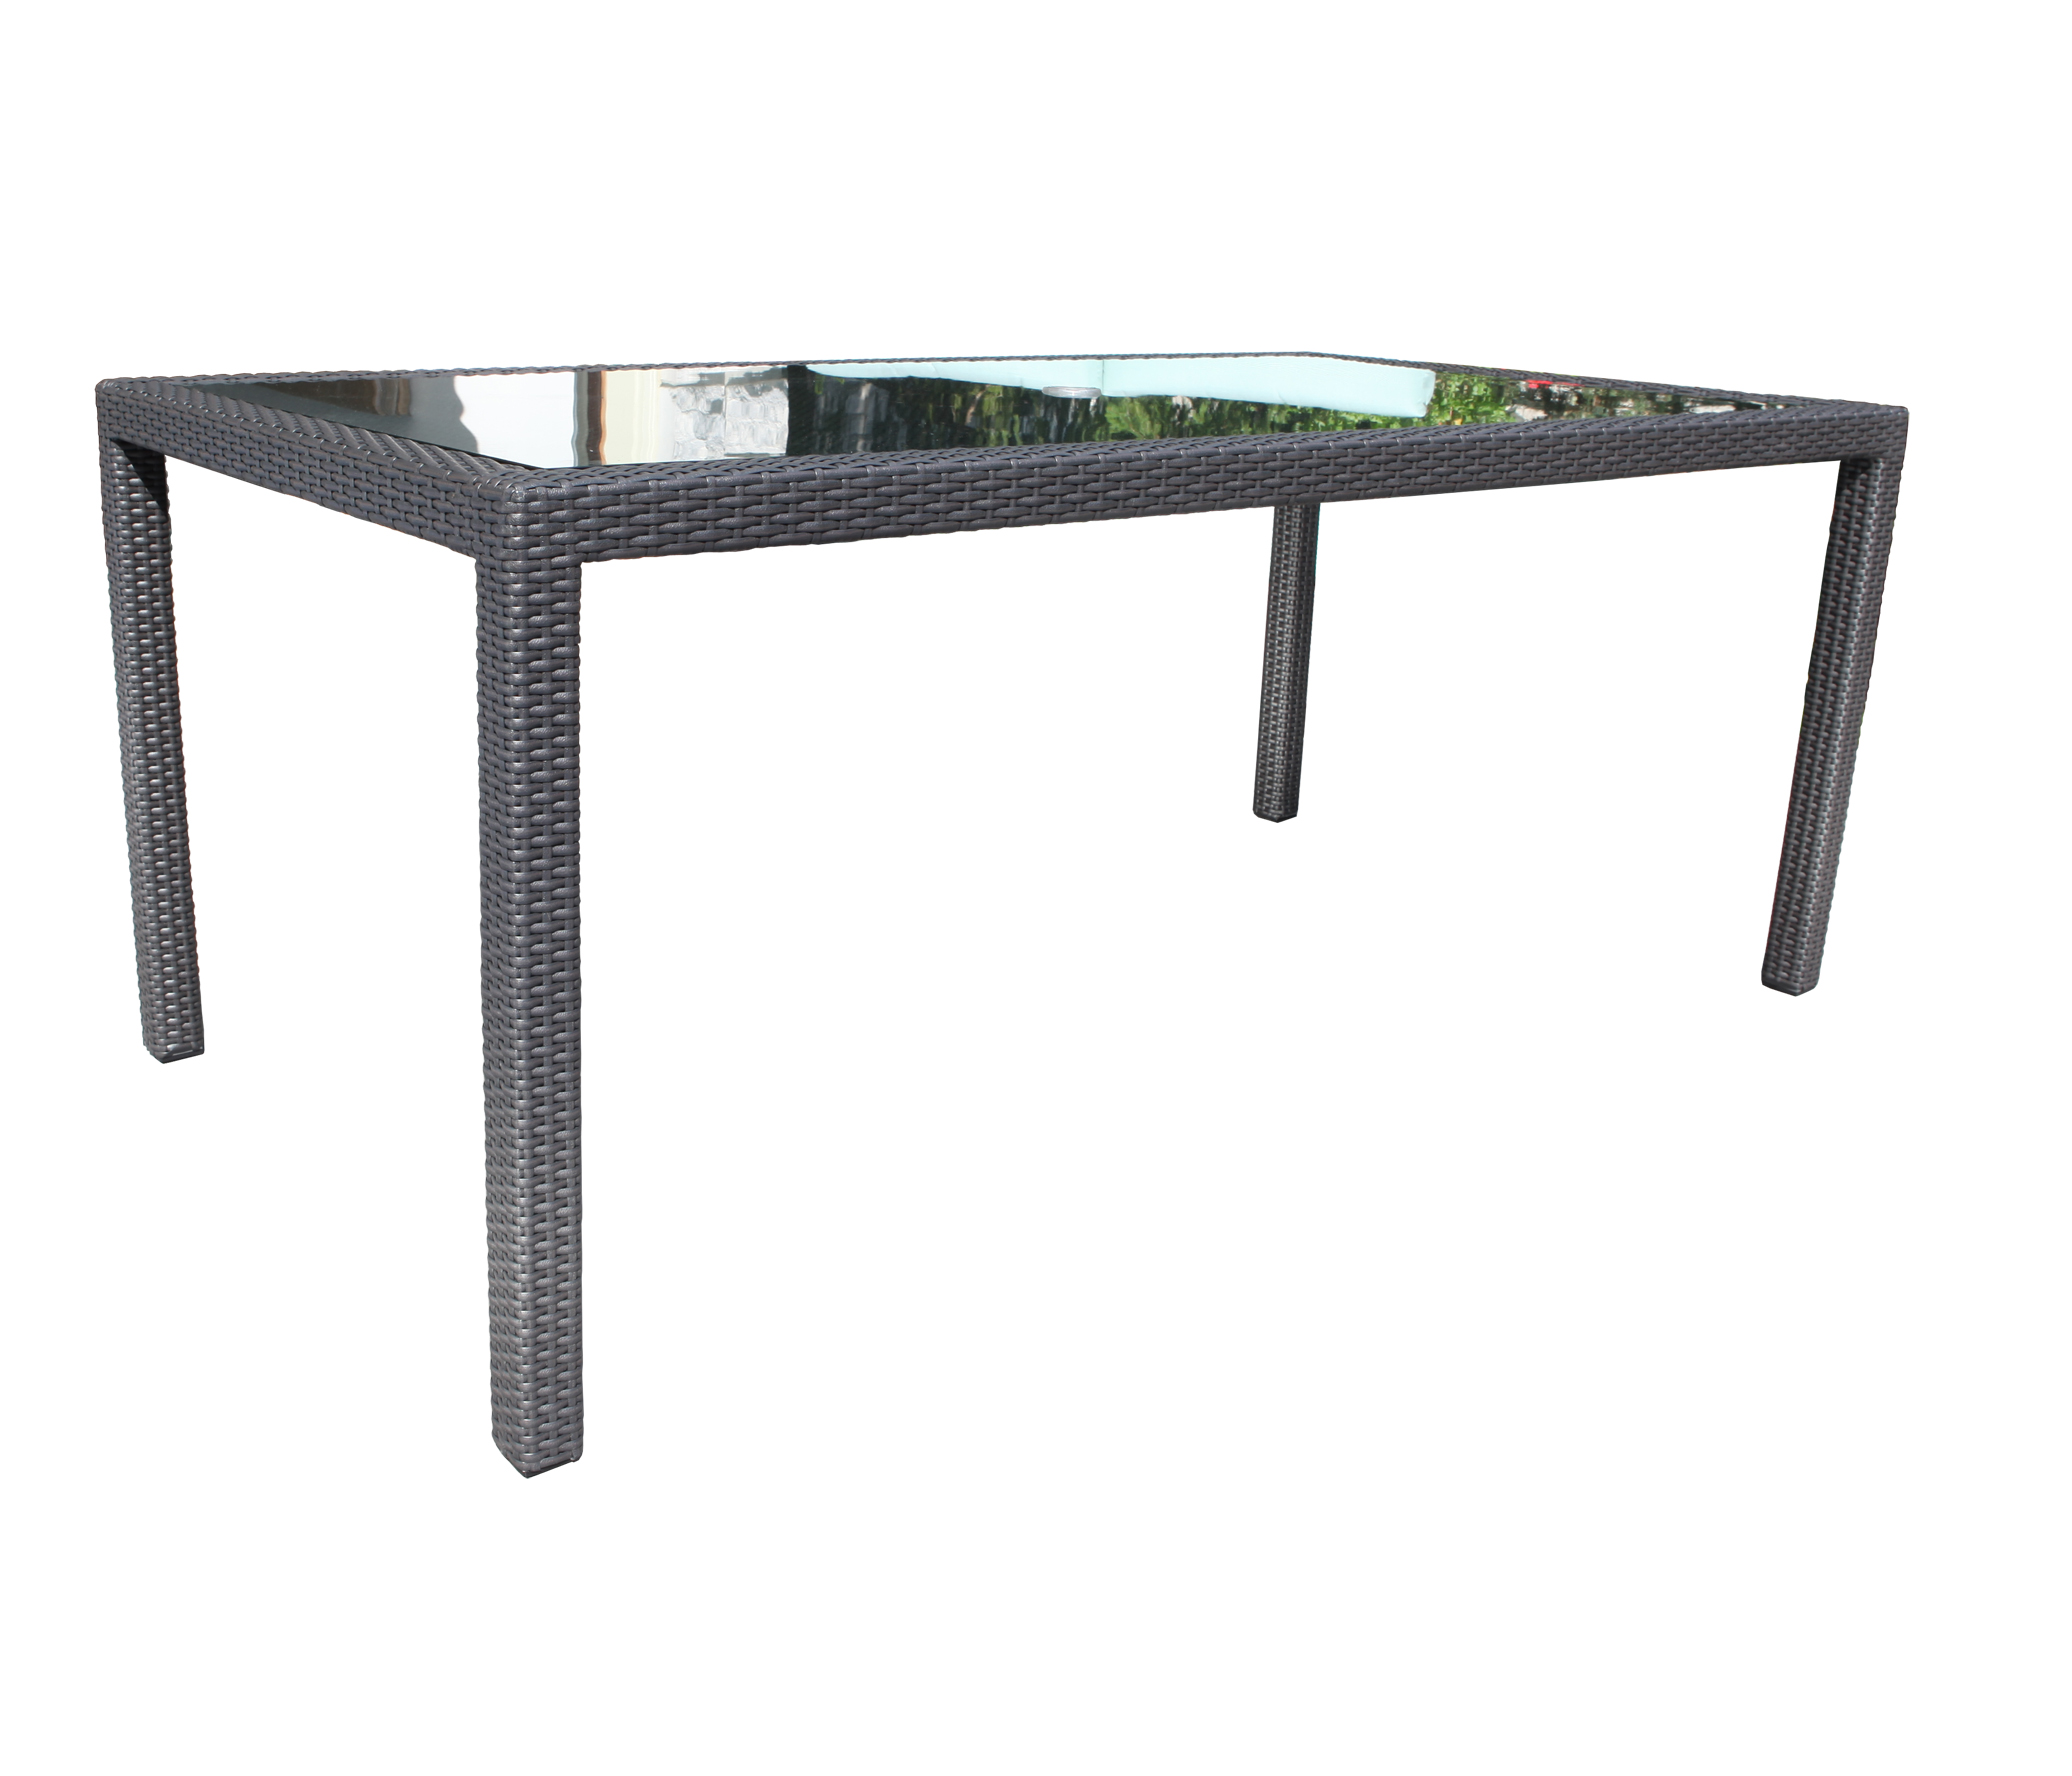 Chorus wicker dining 84 rectangular table patio at sun for Wicker patio table